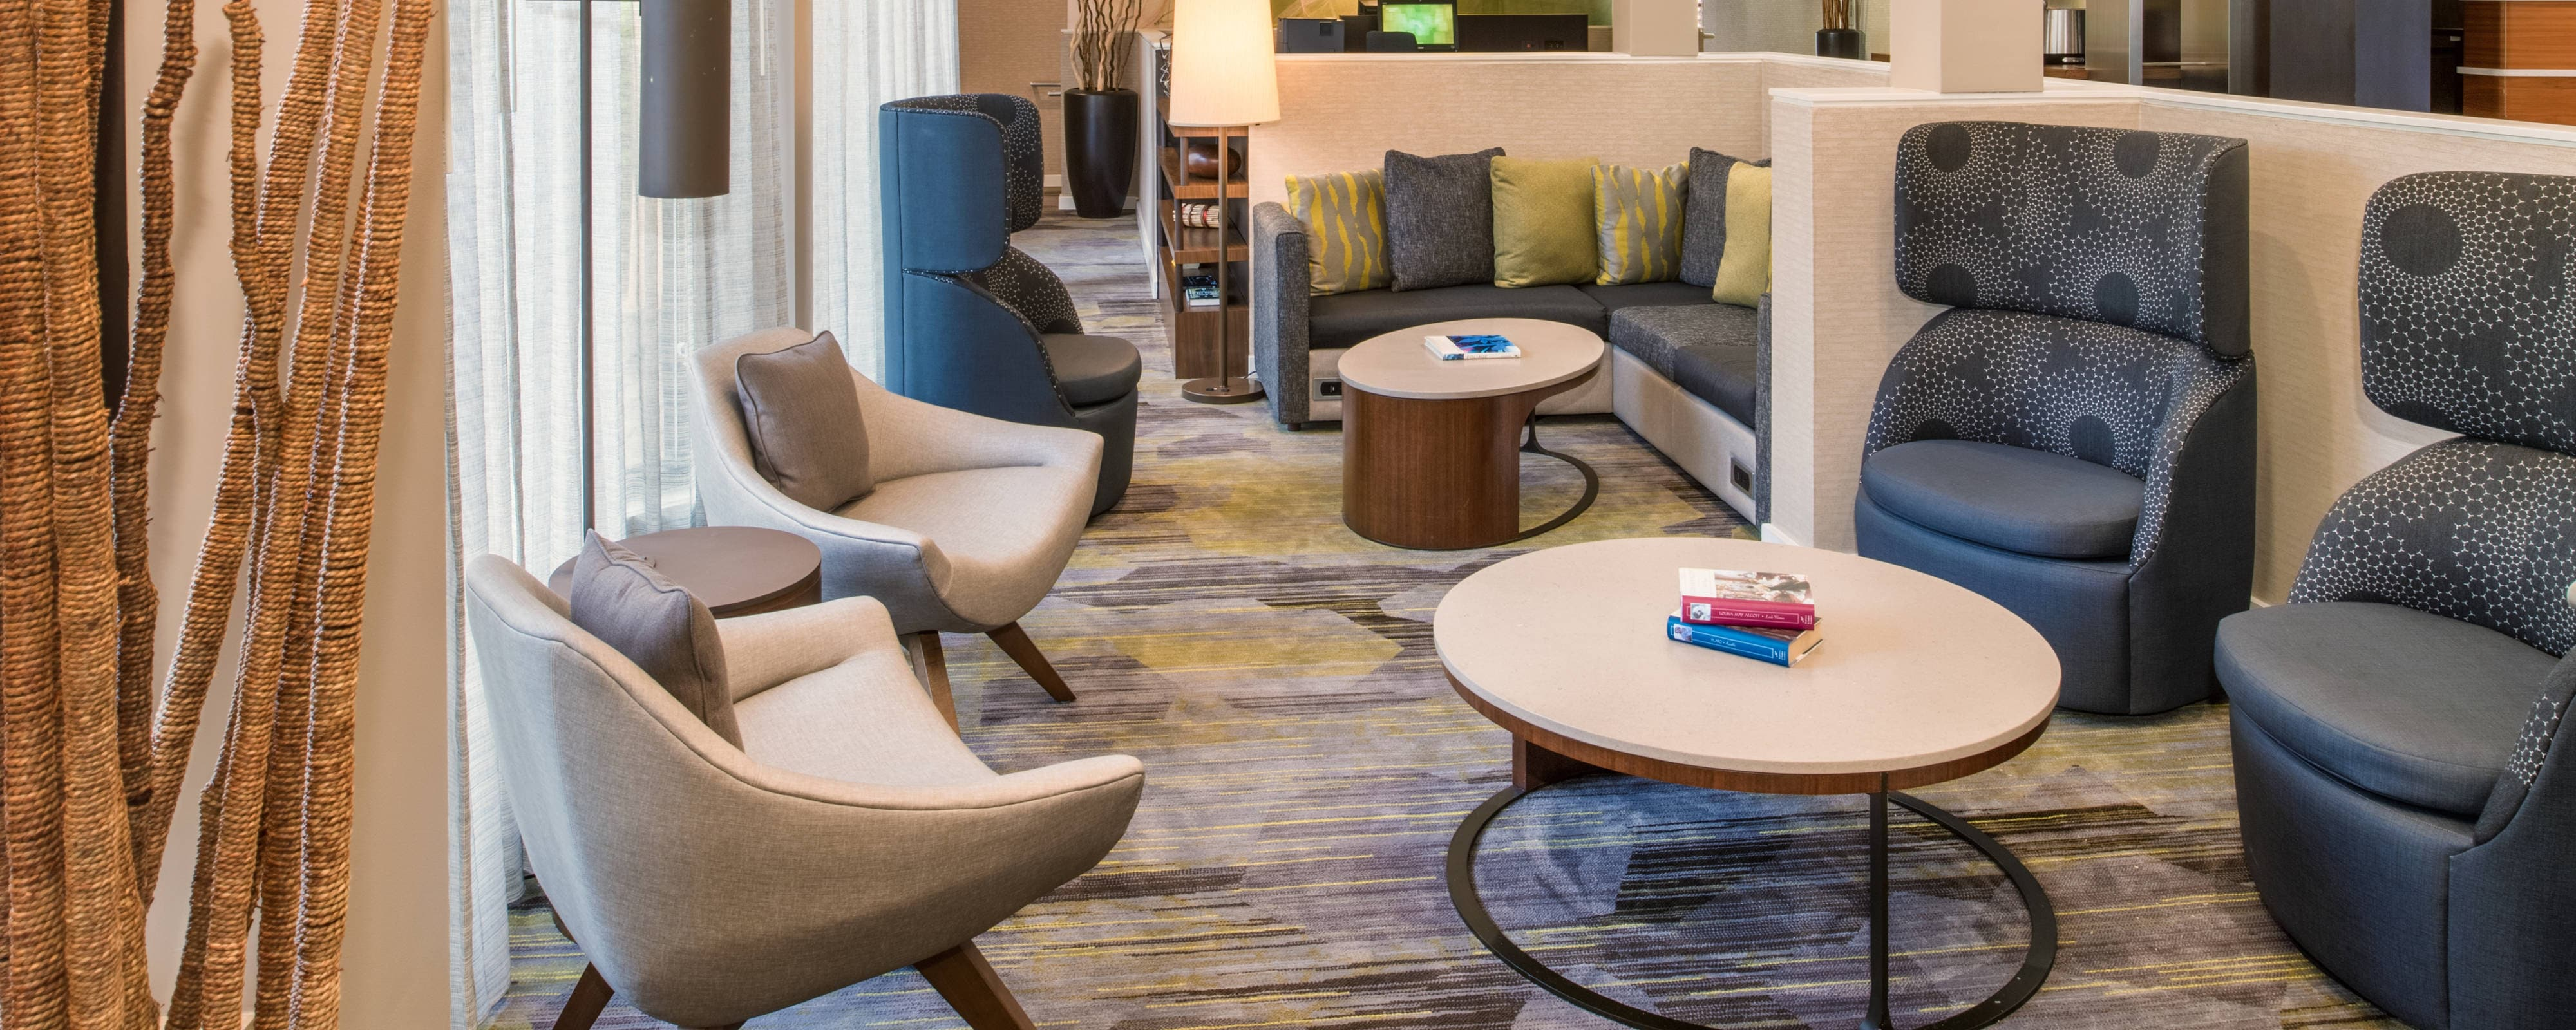 Hotels In Tukwila Washington With Park And Fly Courtyard Seattle